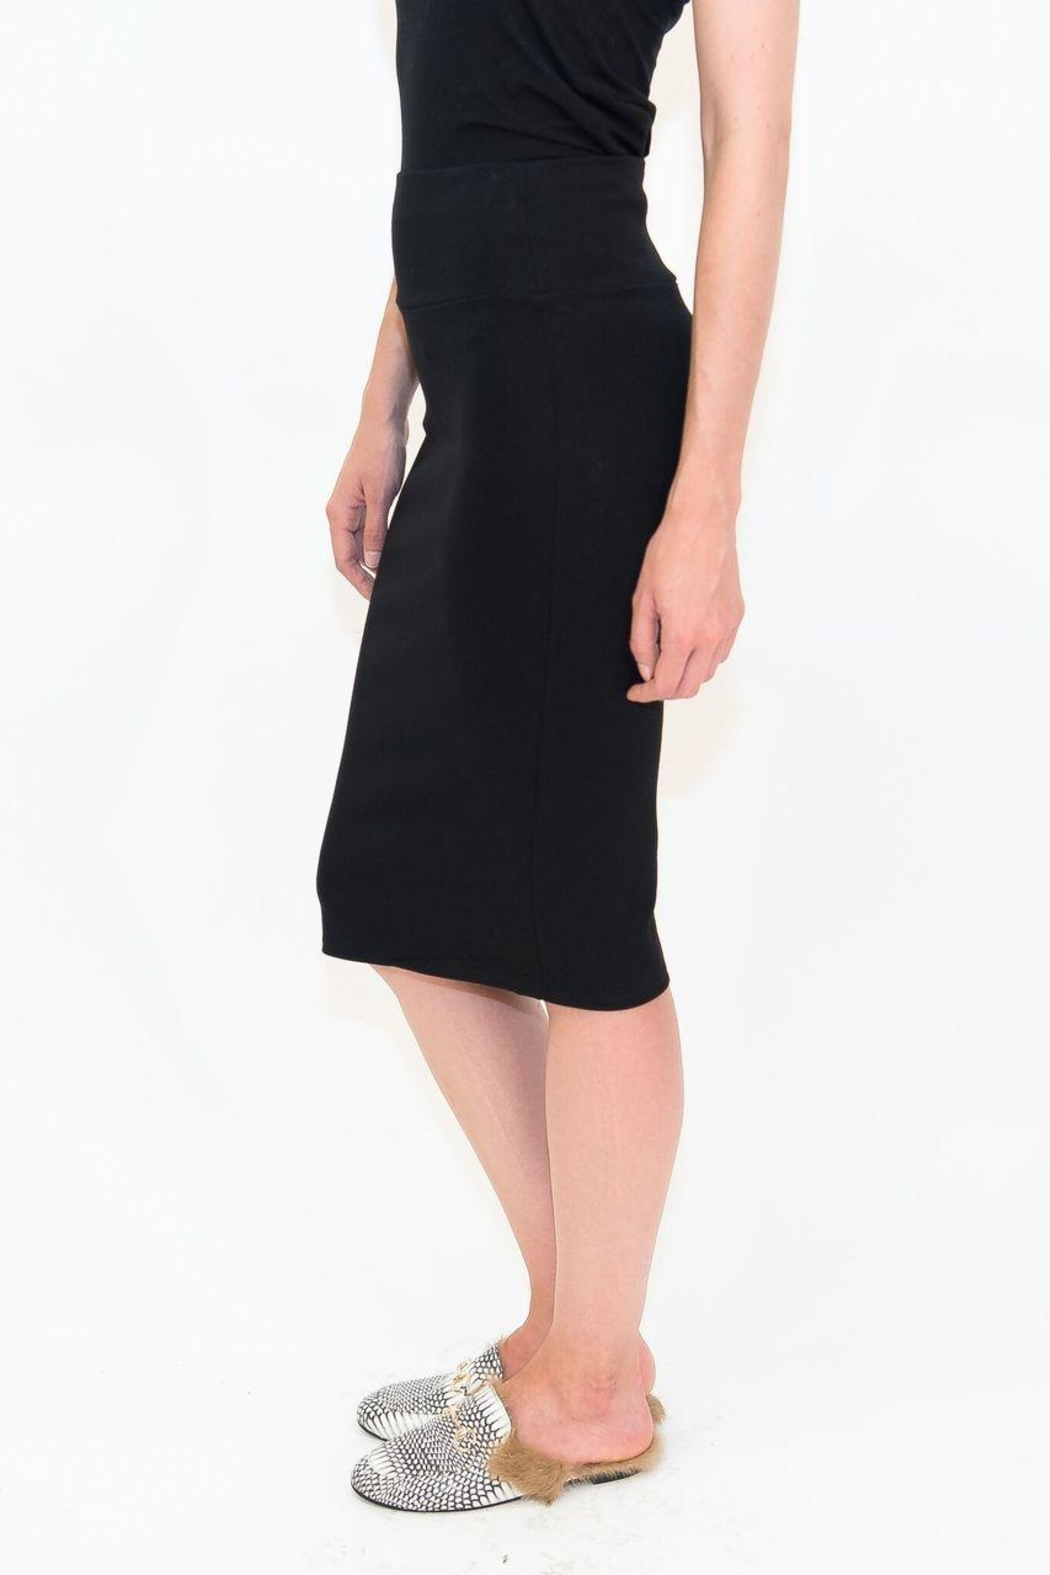 Maya's Place Knee-Length Pencil Skirt - Back Cropped Image